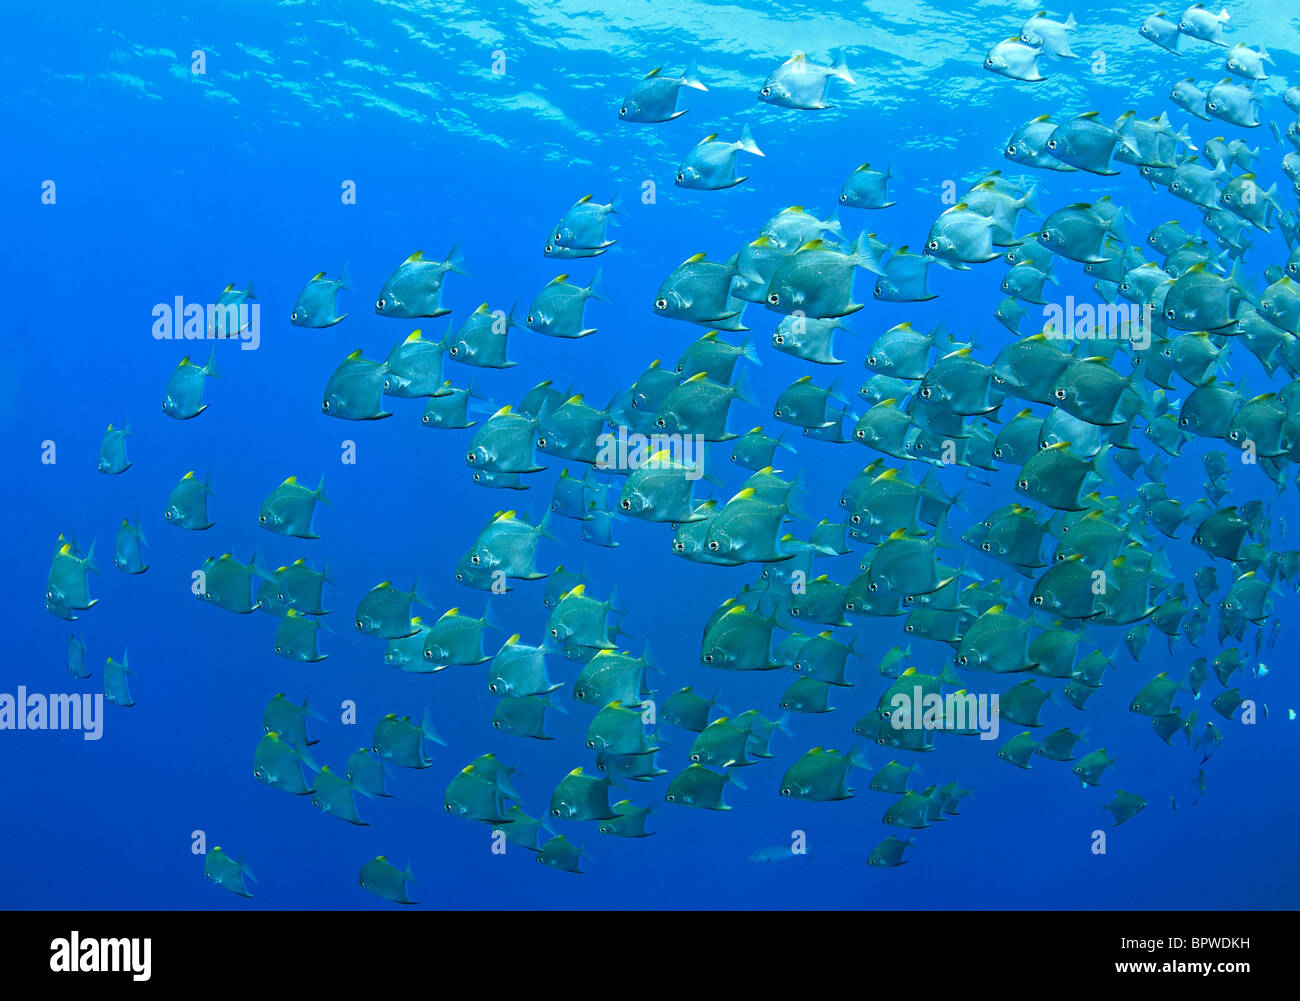 A school of dartfish, or diamondfish, Monodactylus argenteus, swimming underwater. Uepi, Solomon Islands - Stock Image